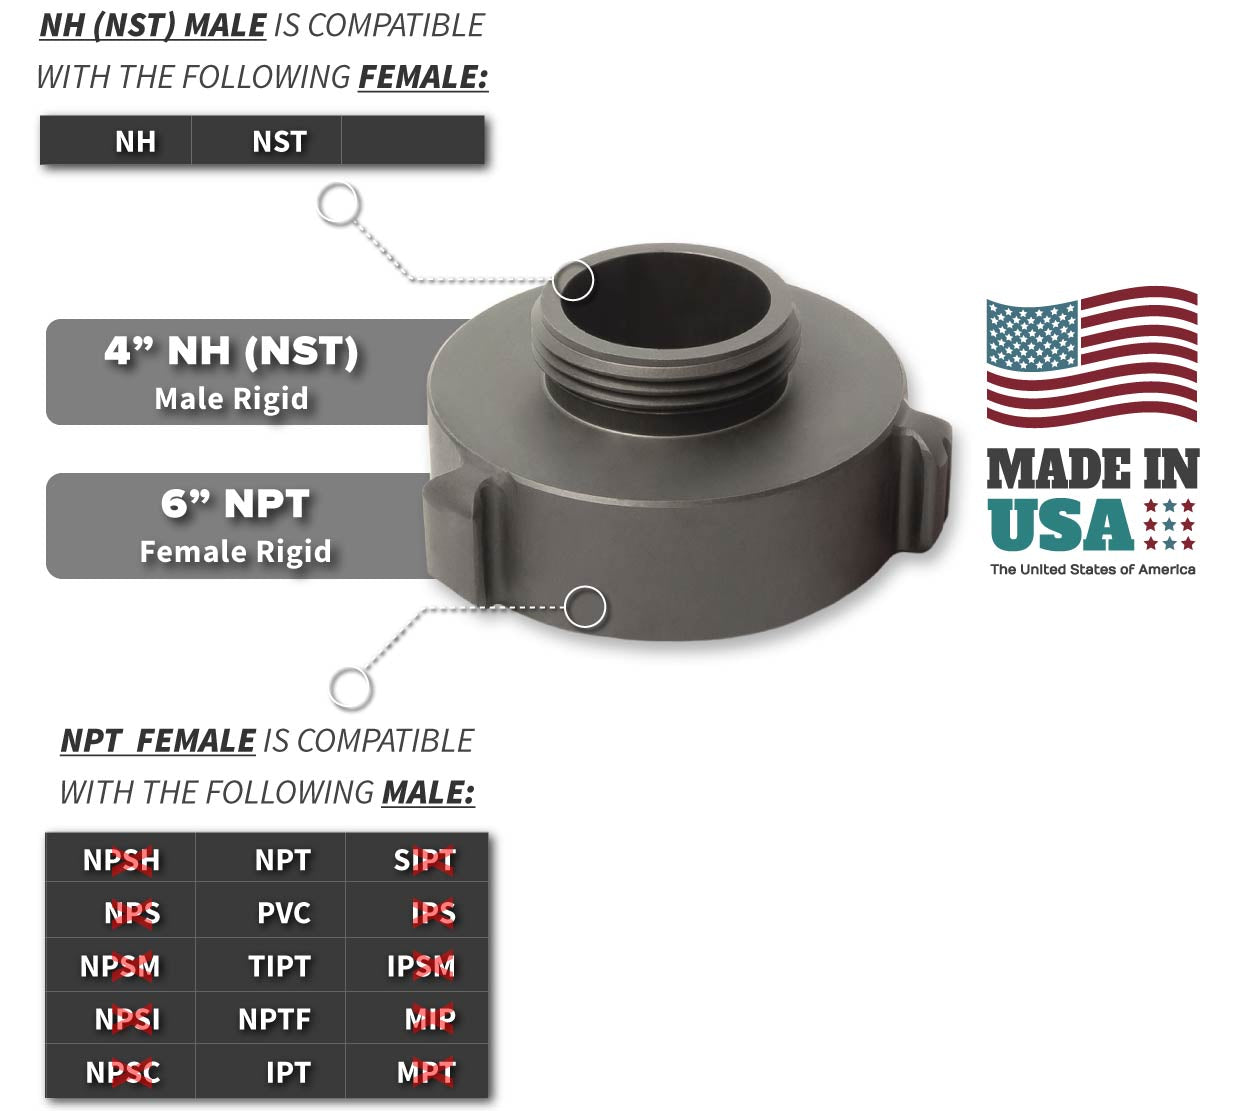 6 Inch NPT Female x 4 Inch NH-NST Male Compatibility Thread Chart